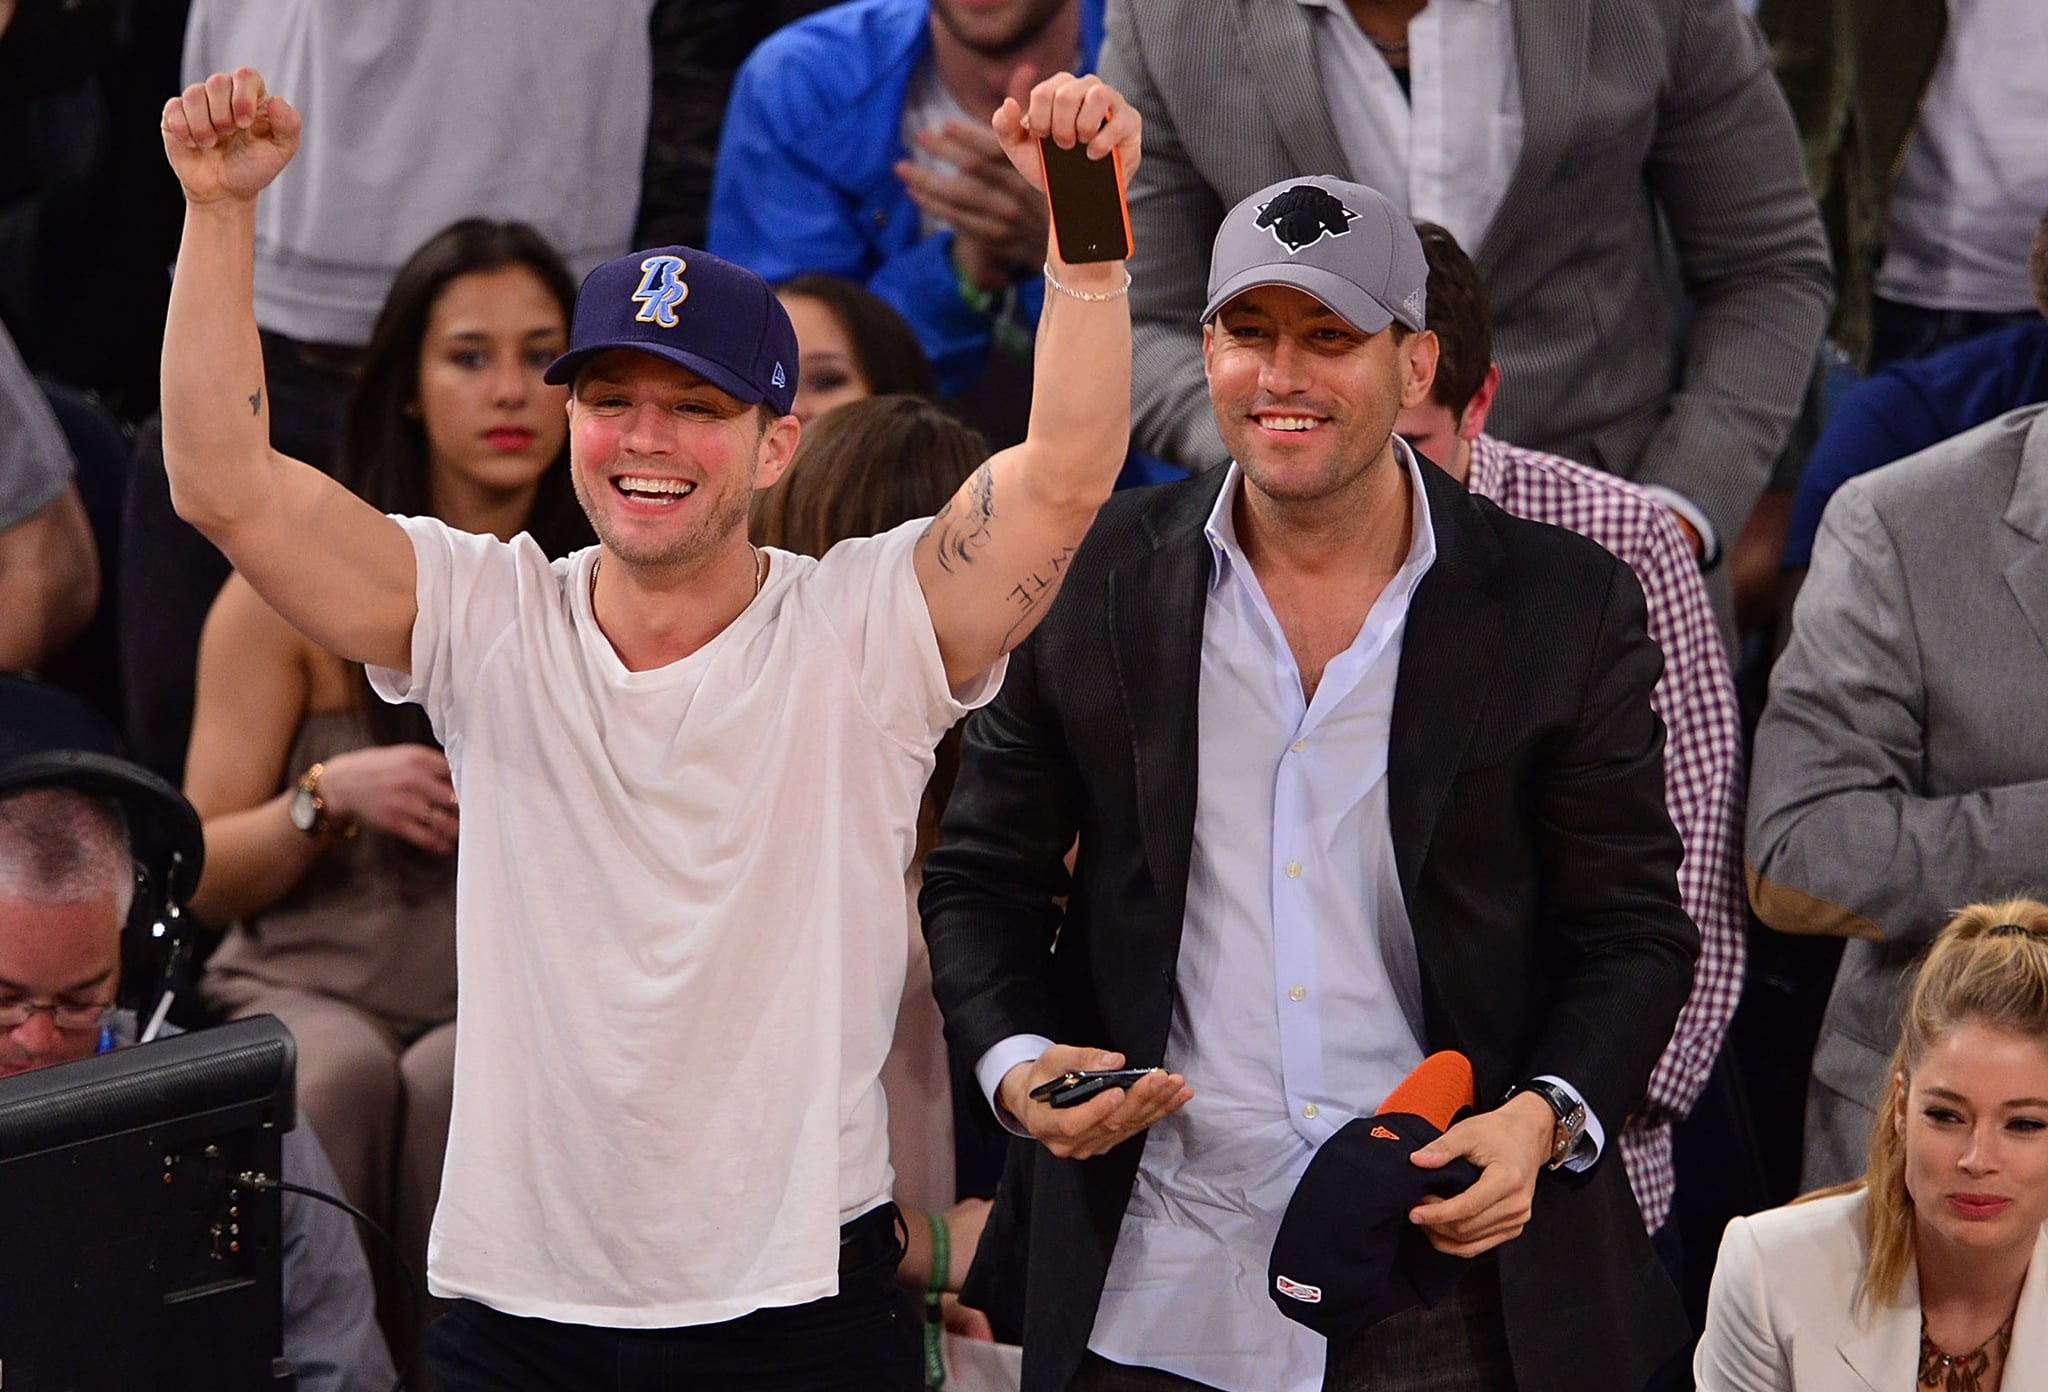 Ryan Phillippe and David Spencer cheered on the NY Knicks as they played the Washington Wizards in April.